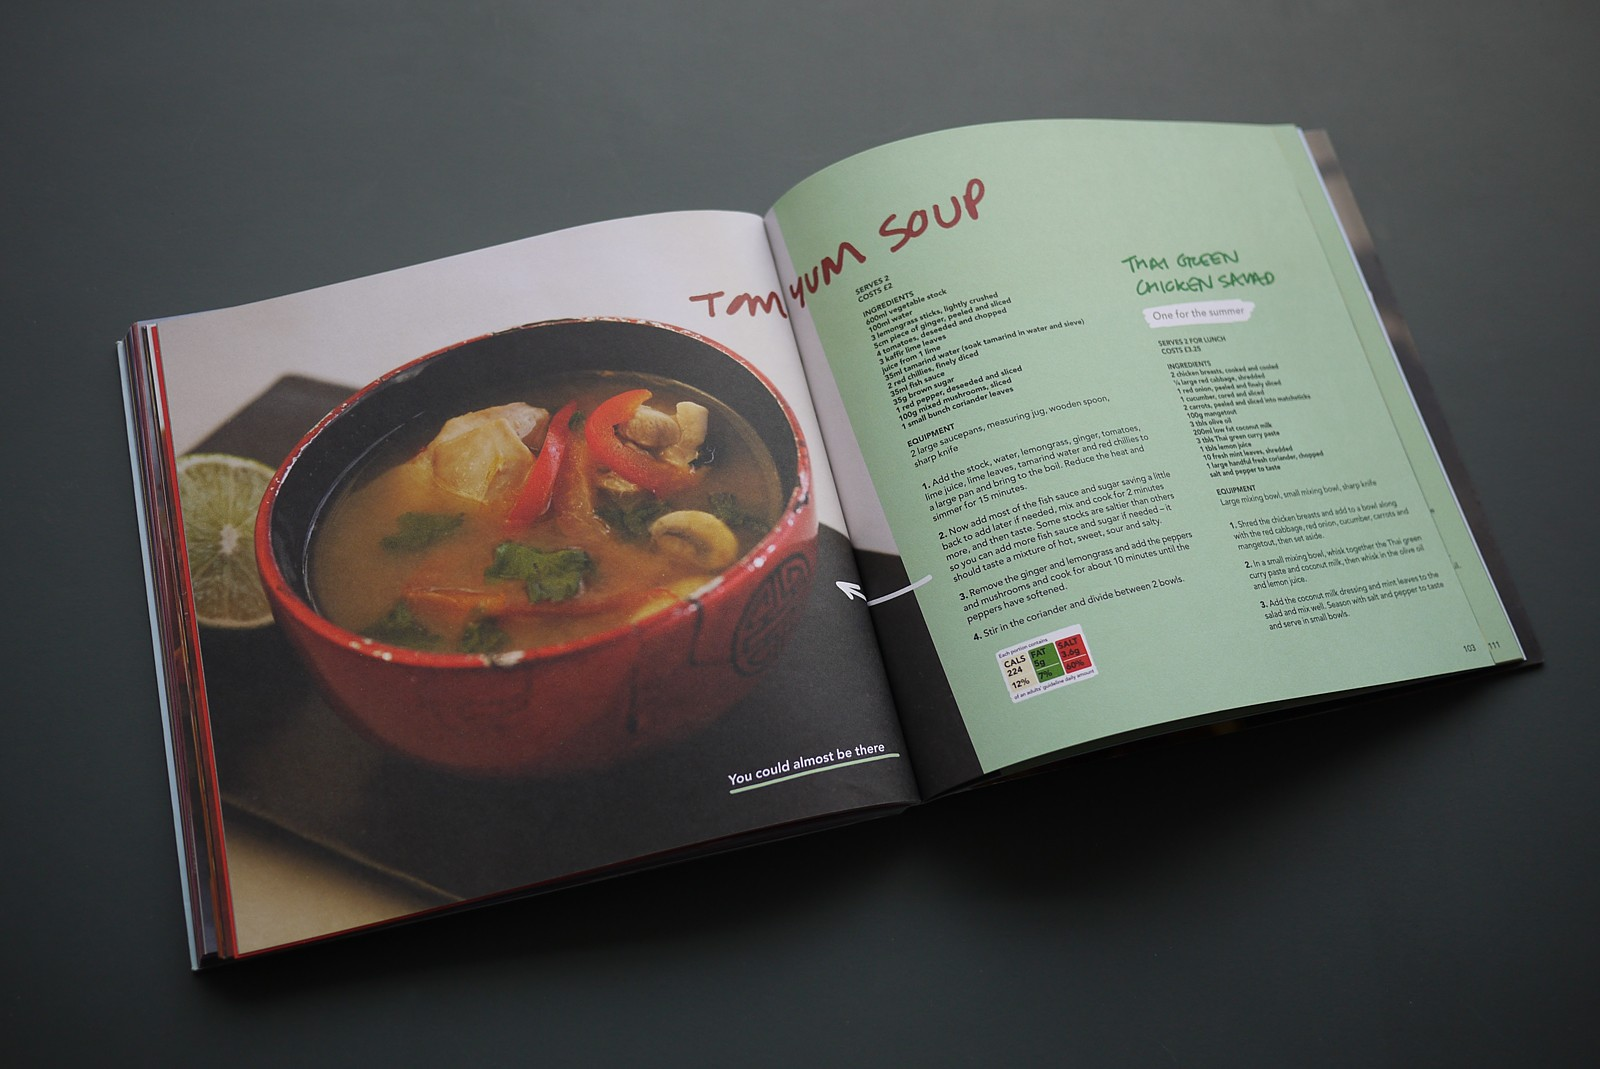 Can Cook branding and cook books